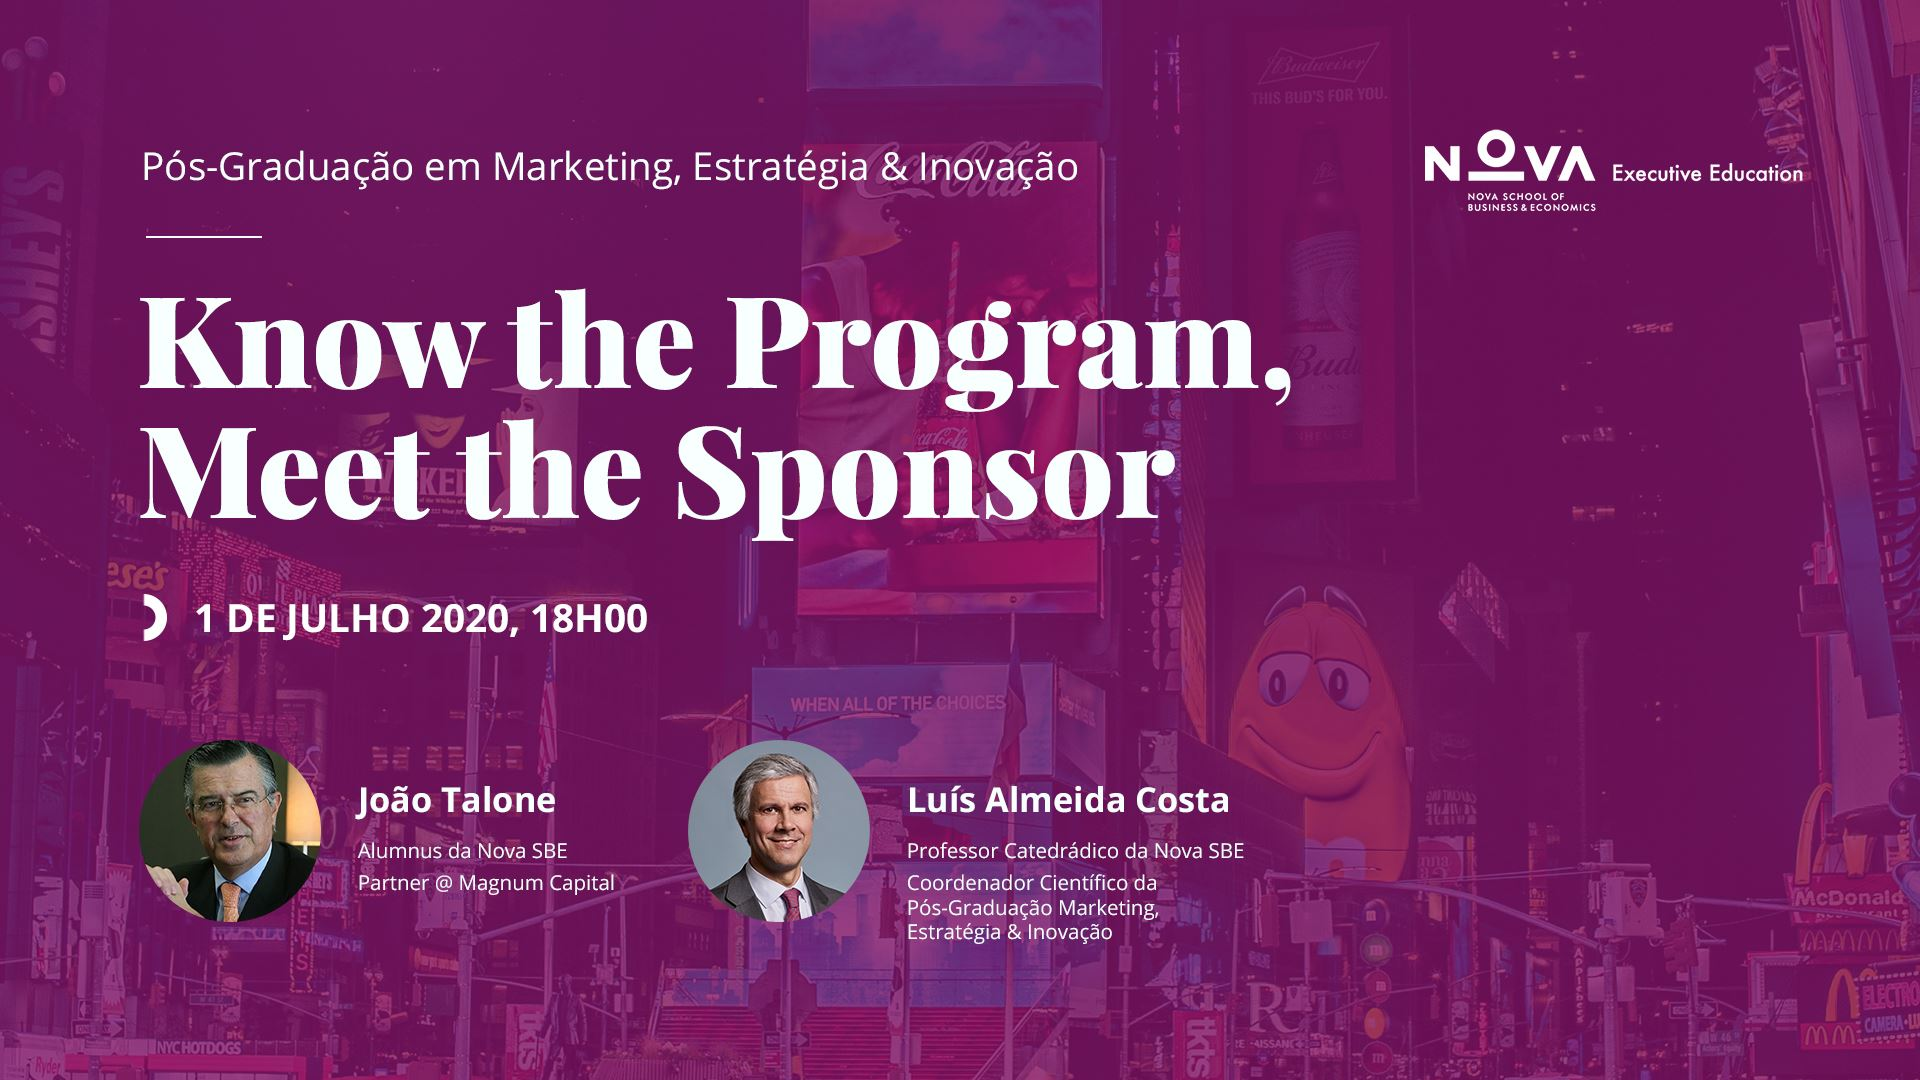 Know the Program, Meet the Sponsor: João Talone